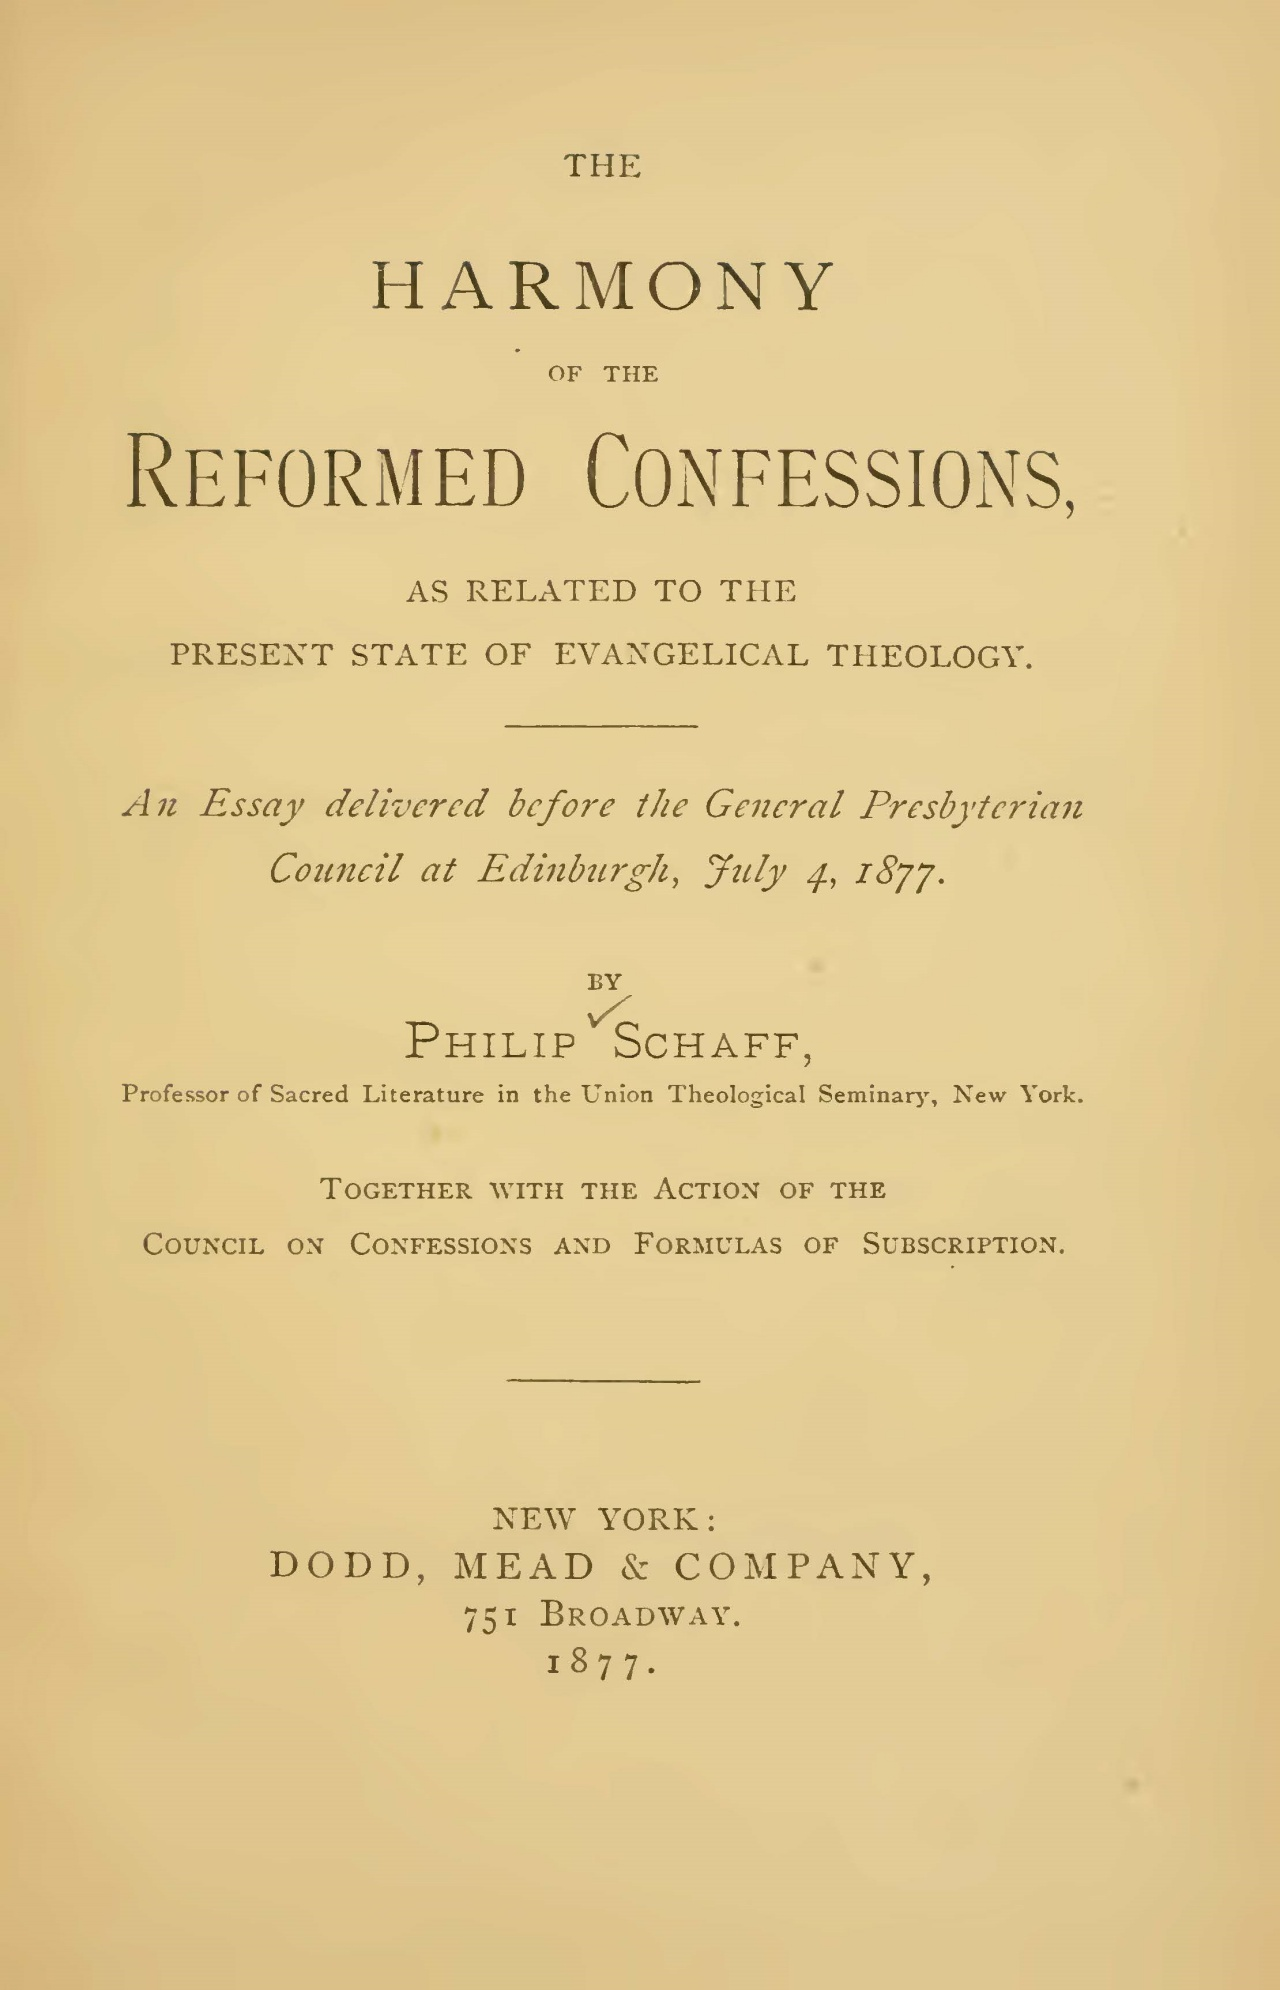 Schaff, Philip, The Harmony of the Reformed Confessions Title Page.jpg